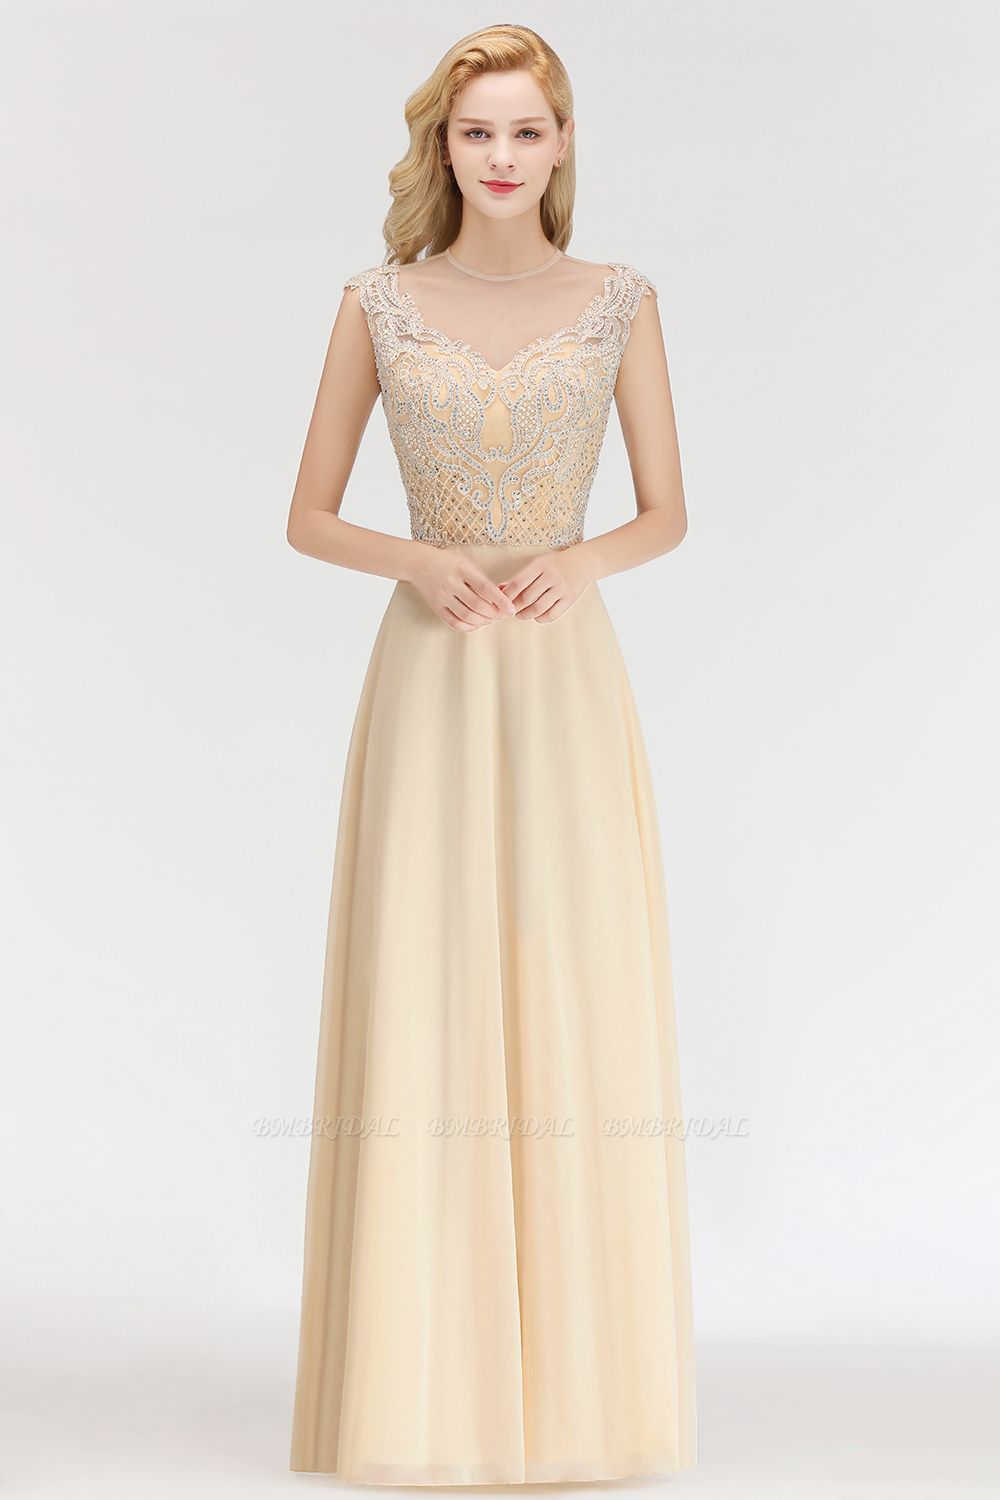 Modest Jewel Champagne Lace Bridesmaid Dresses with Beadings